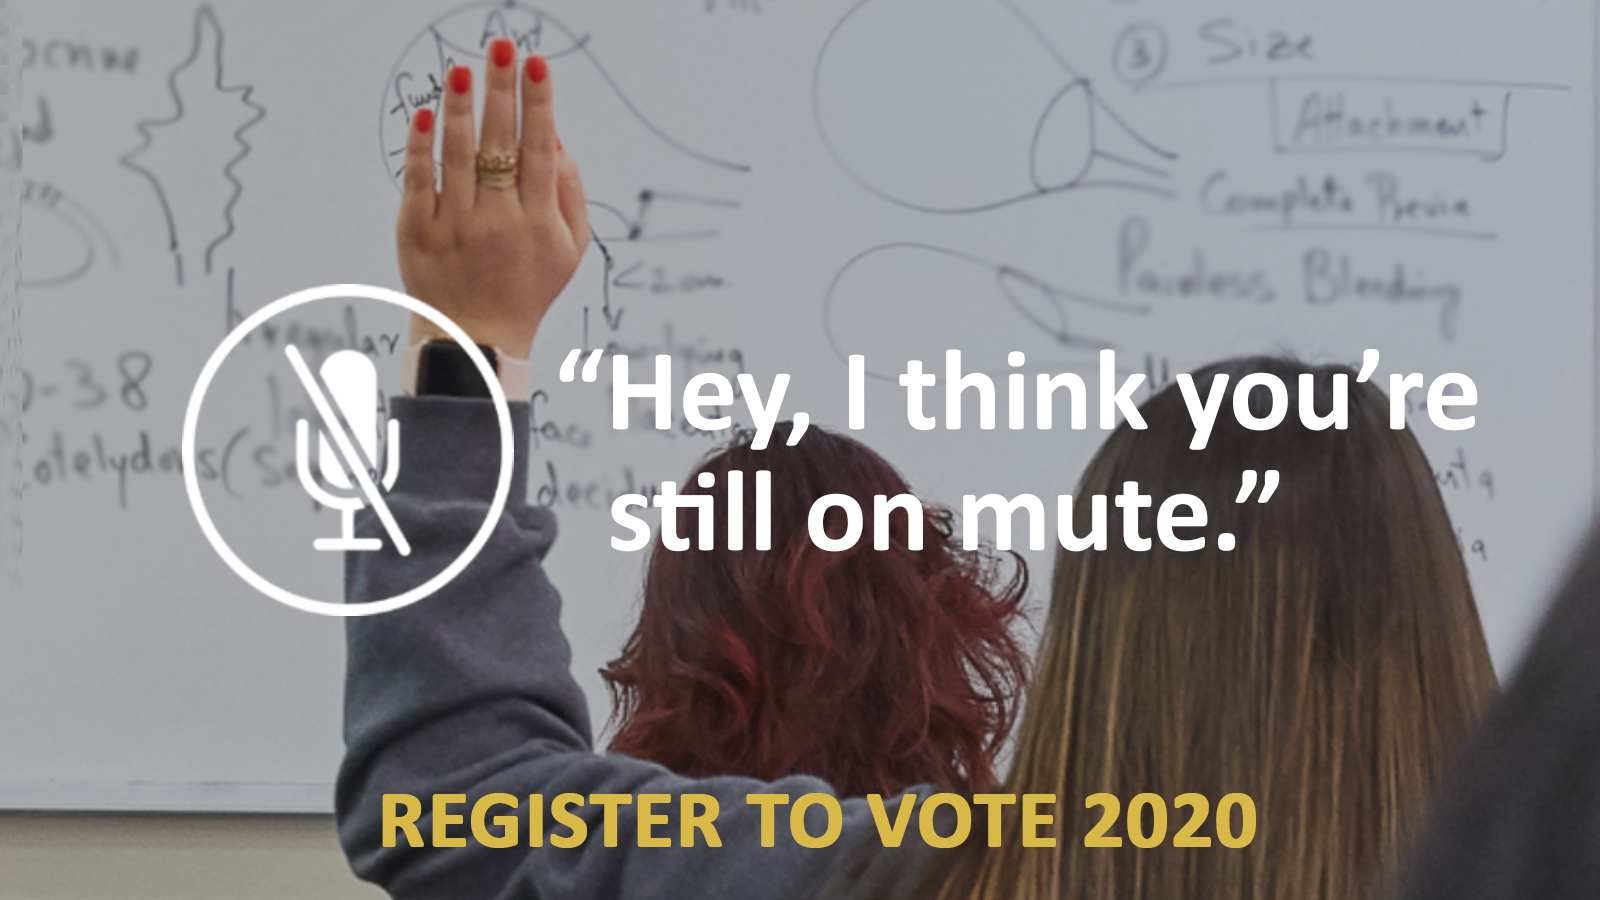 Hey I think you're still on mute. Register to vote 2020!